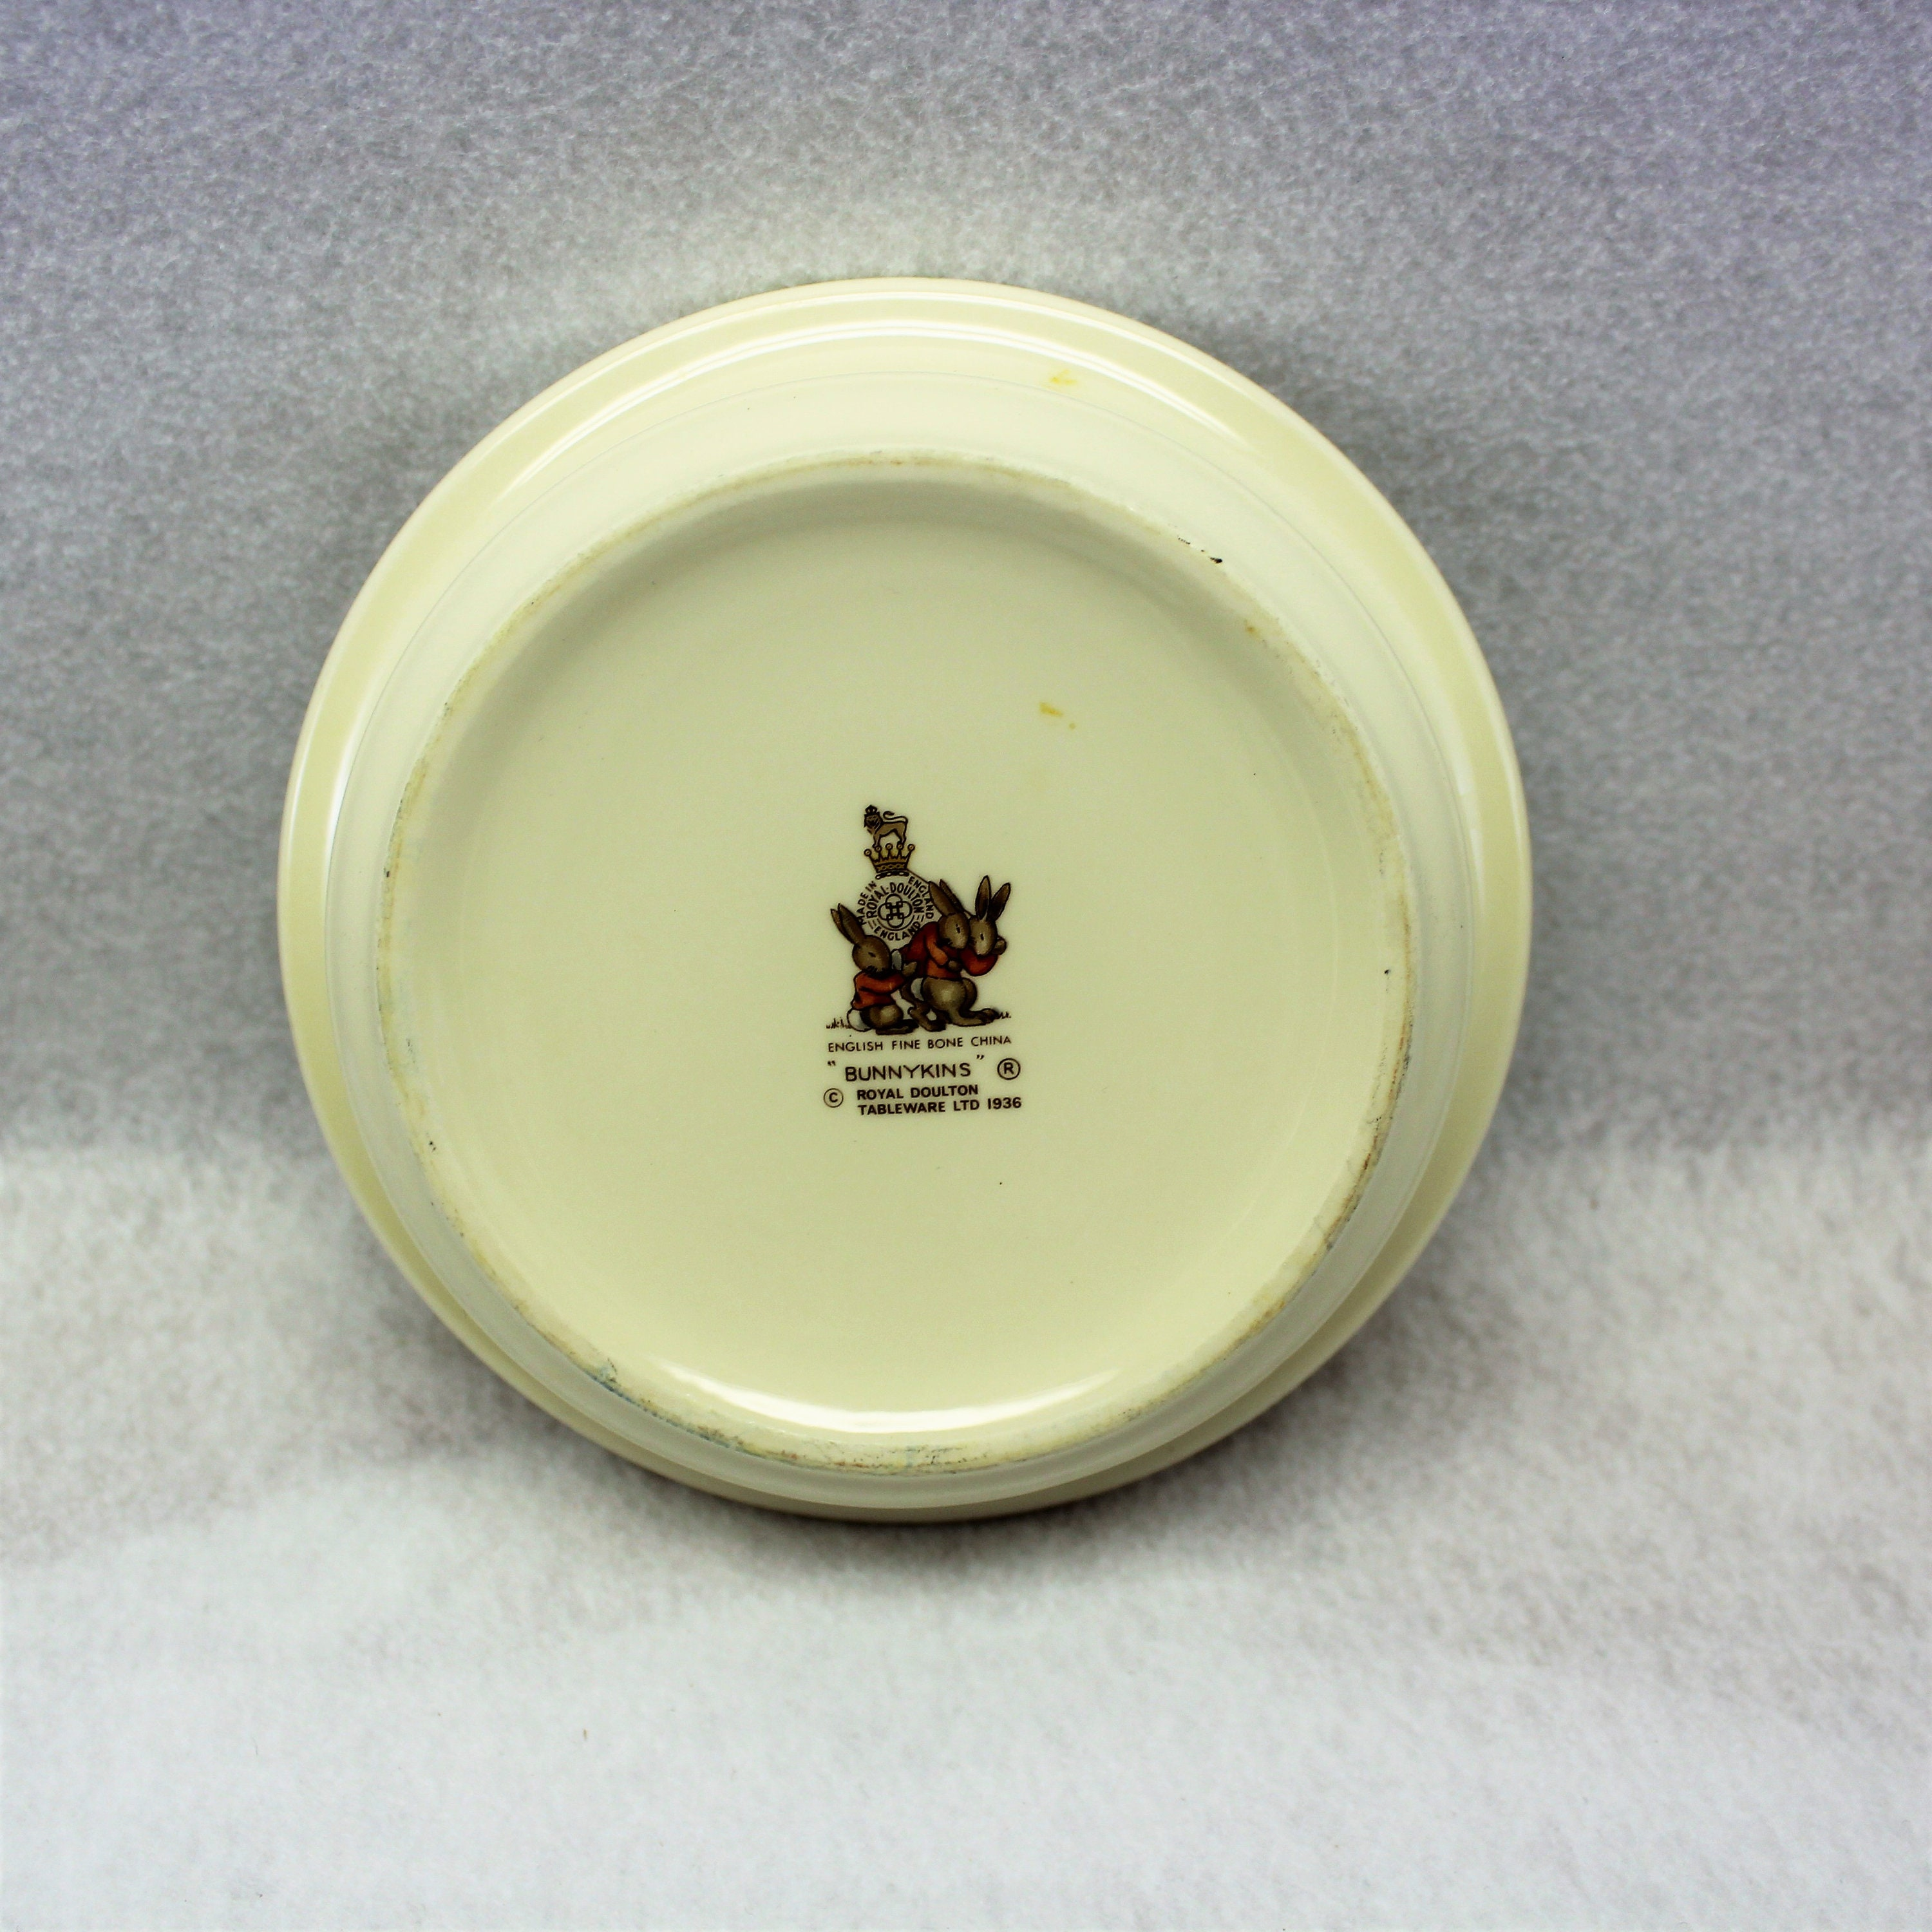 Shipping ... & Bunnykins Royal Doulton Tableware LTD 1936 Bowl Vintage Sailing ...